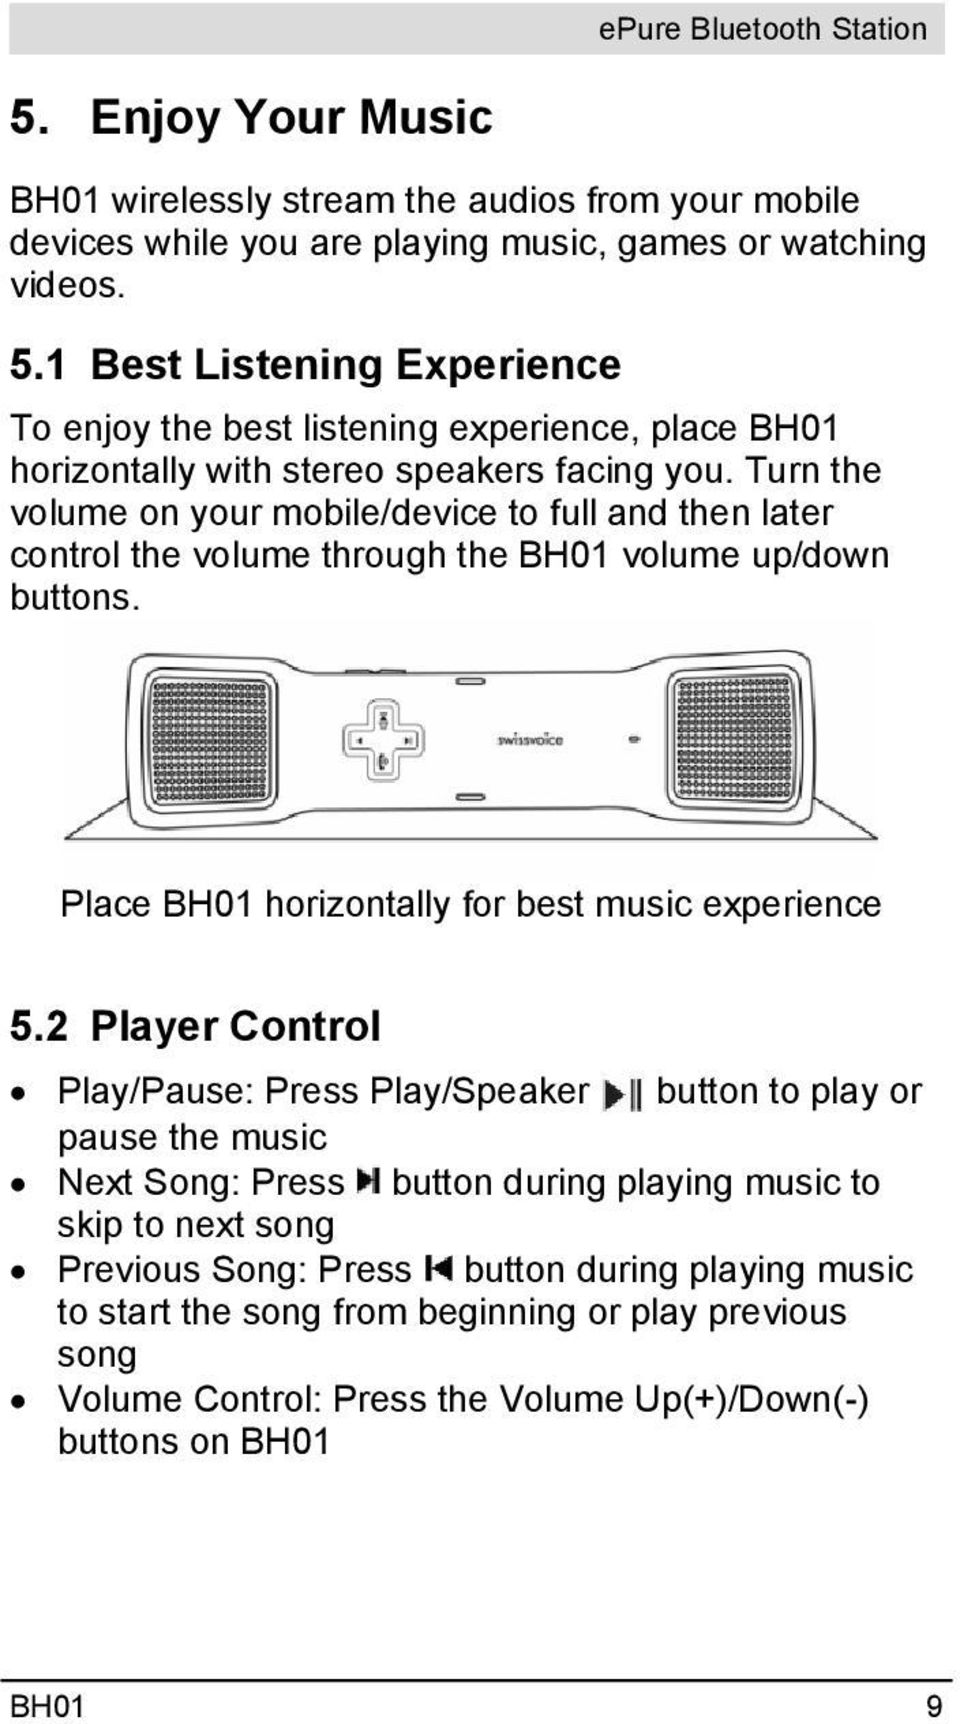 Turn the volume on your mobile/device to full and then later control the volume through the BH01 volume up/down buttons. Place BH01 horizontally for best music experience 5.